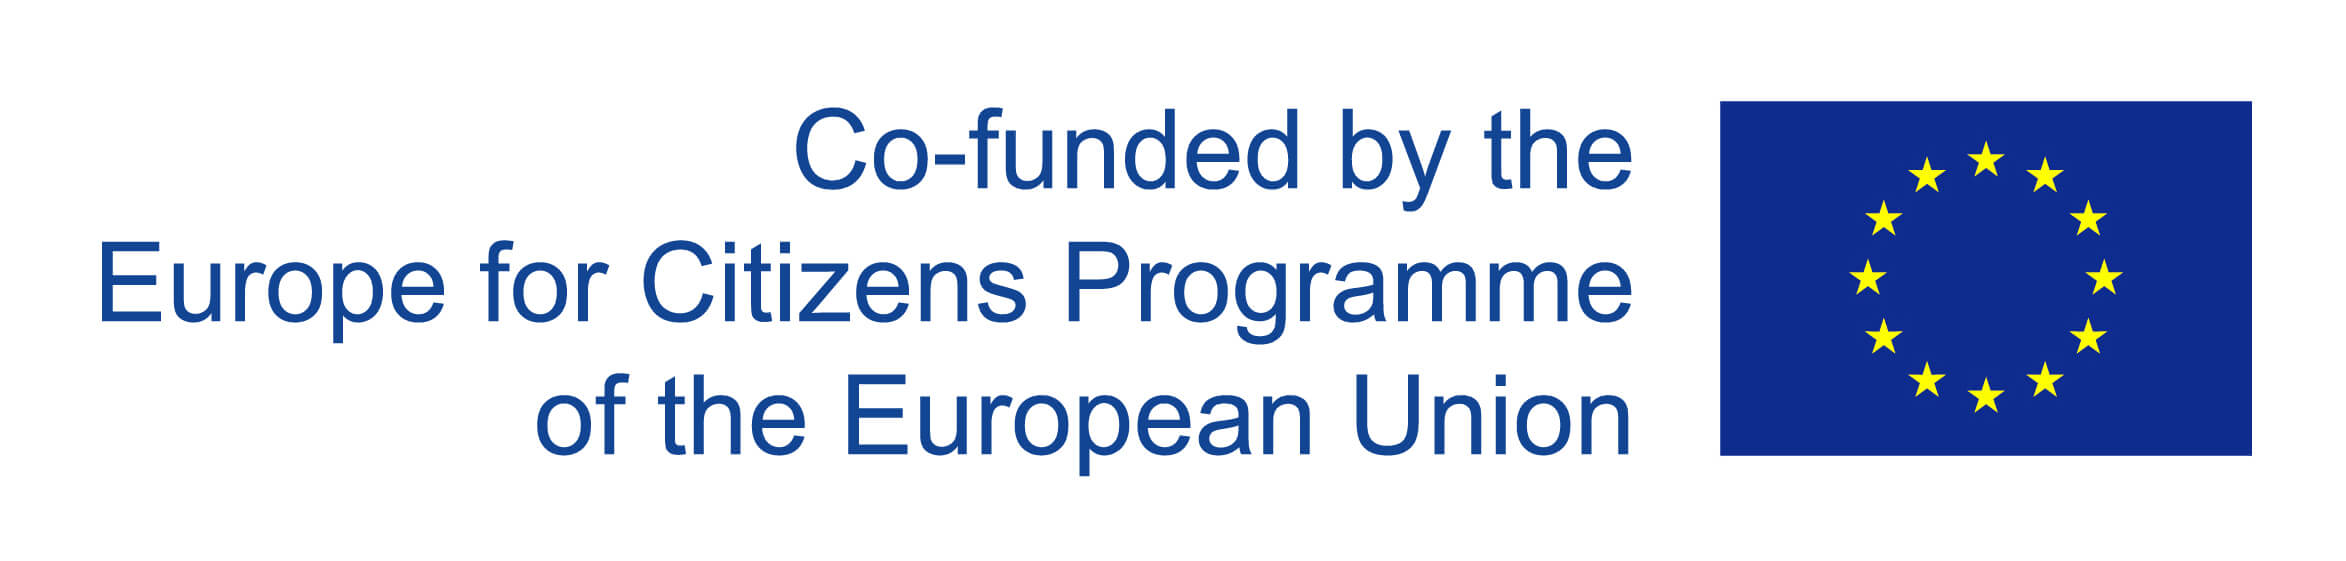 europe-citizens-funded-logo